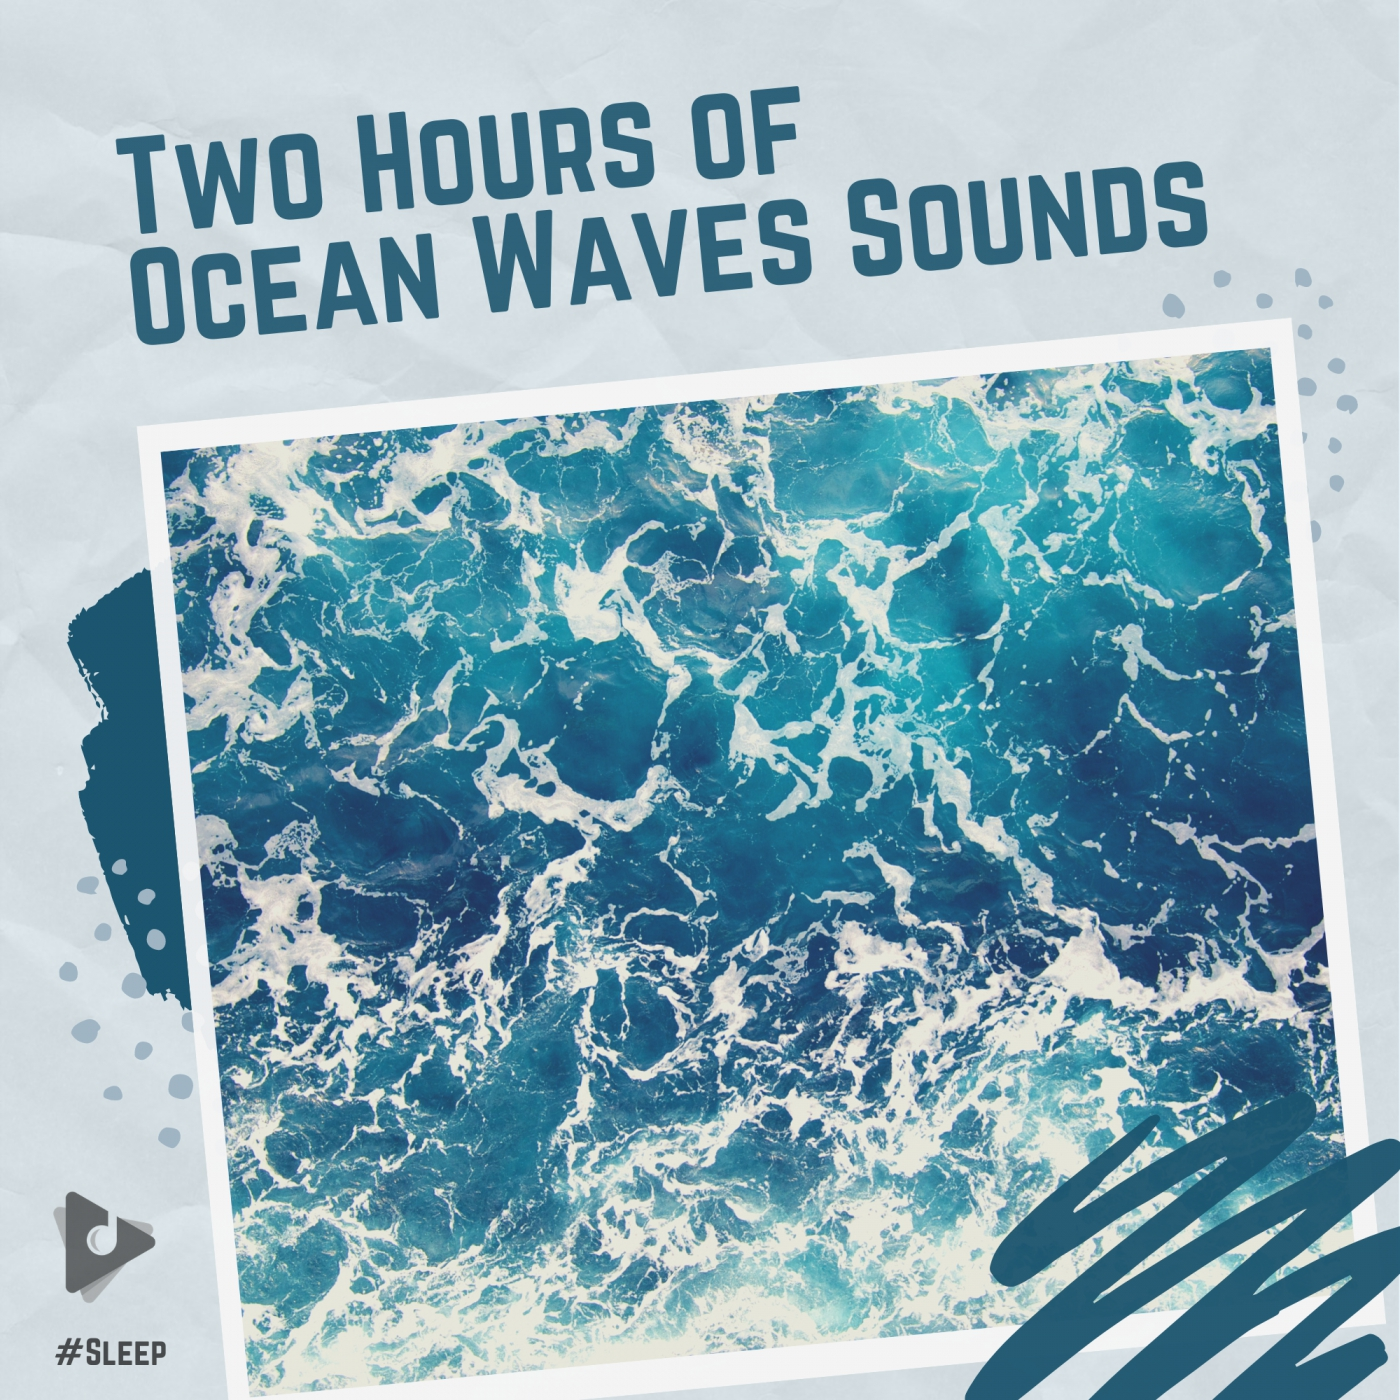 Two Hours of Ocean Waves Sounds